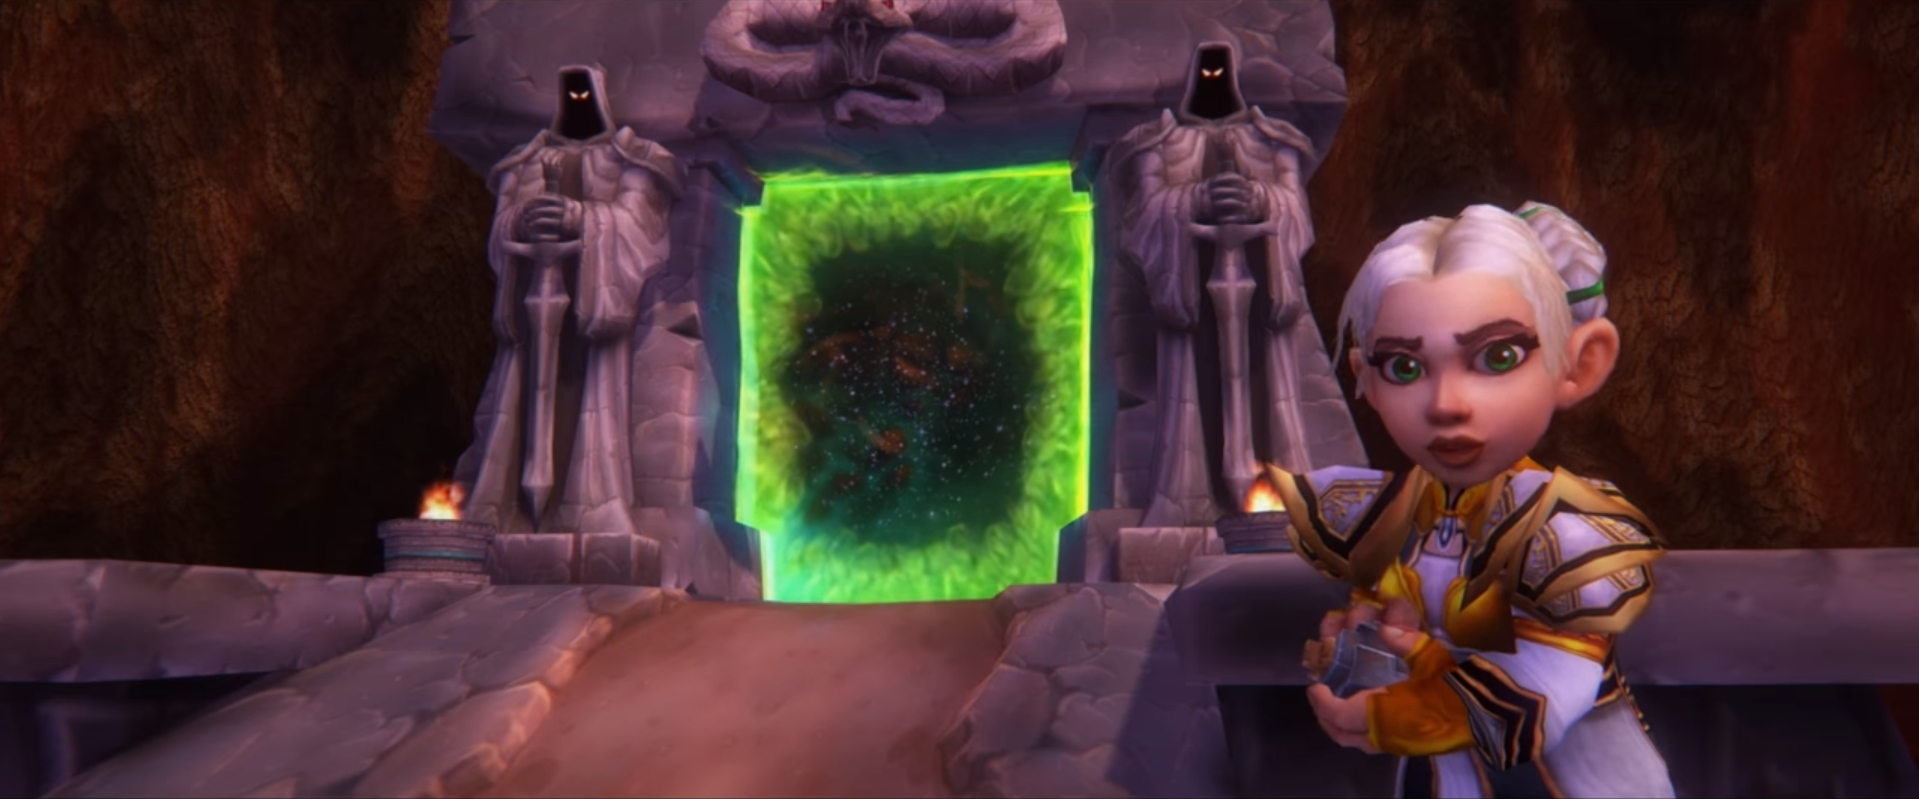 World Of Warcraft's 16th Anniversary Event Has Begun, Now Through November 22nd!